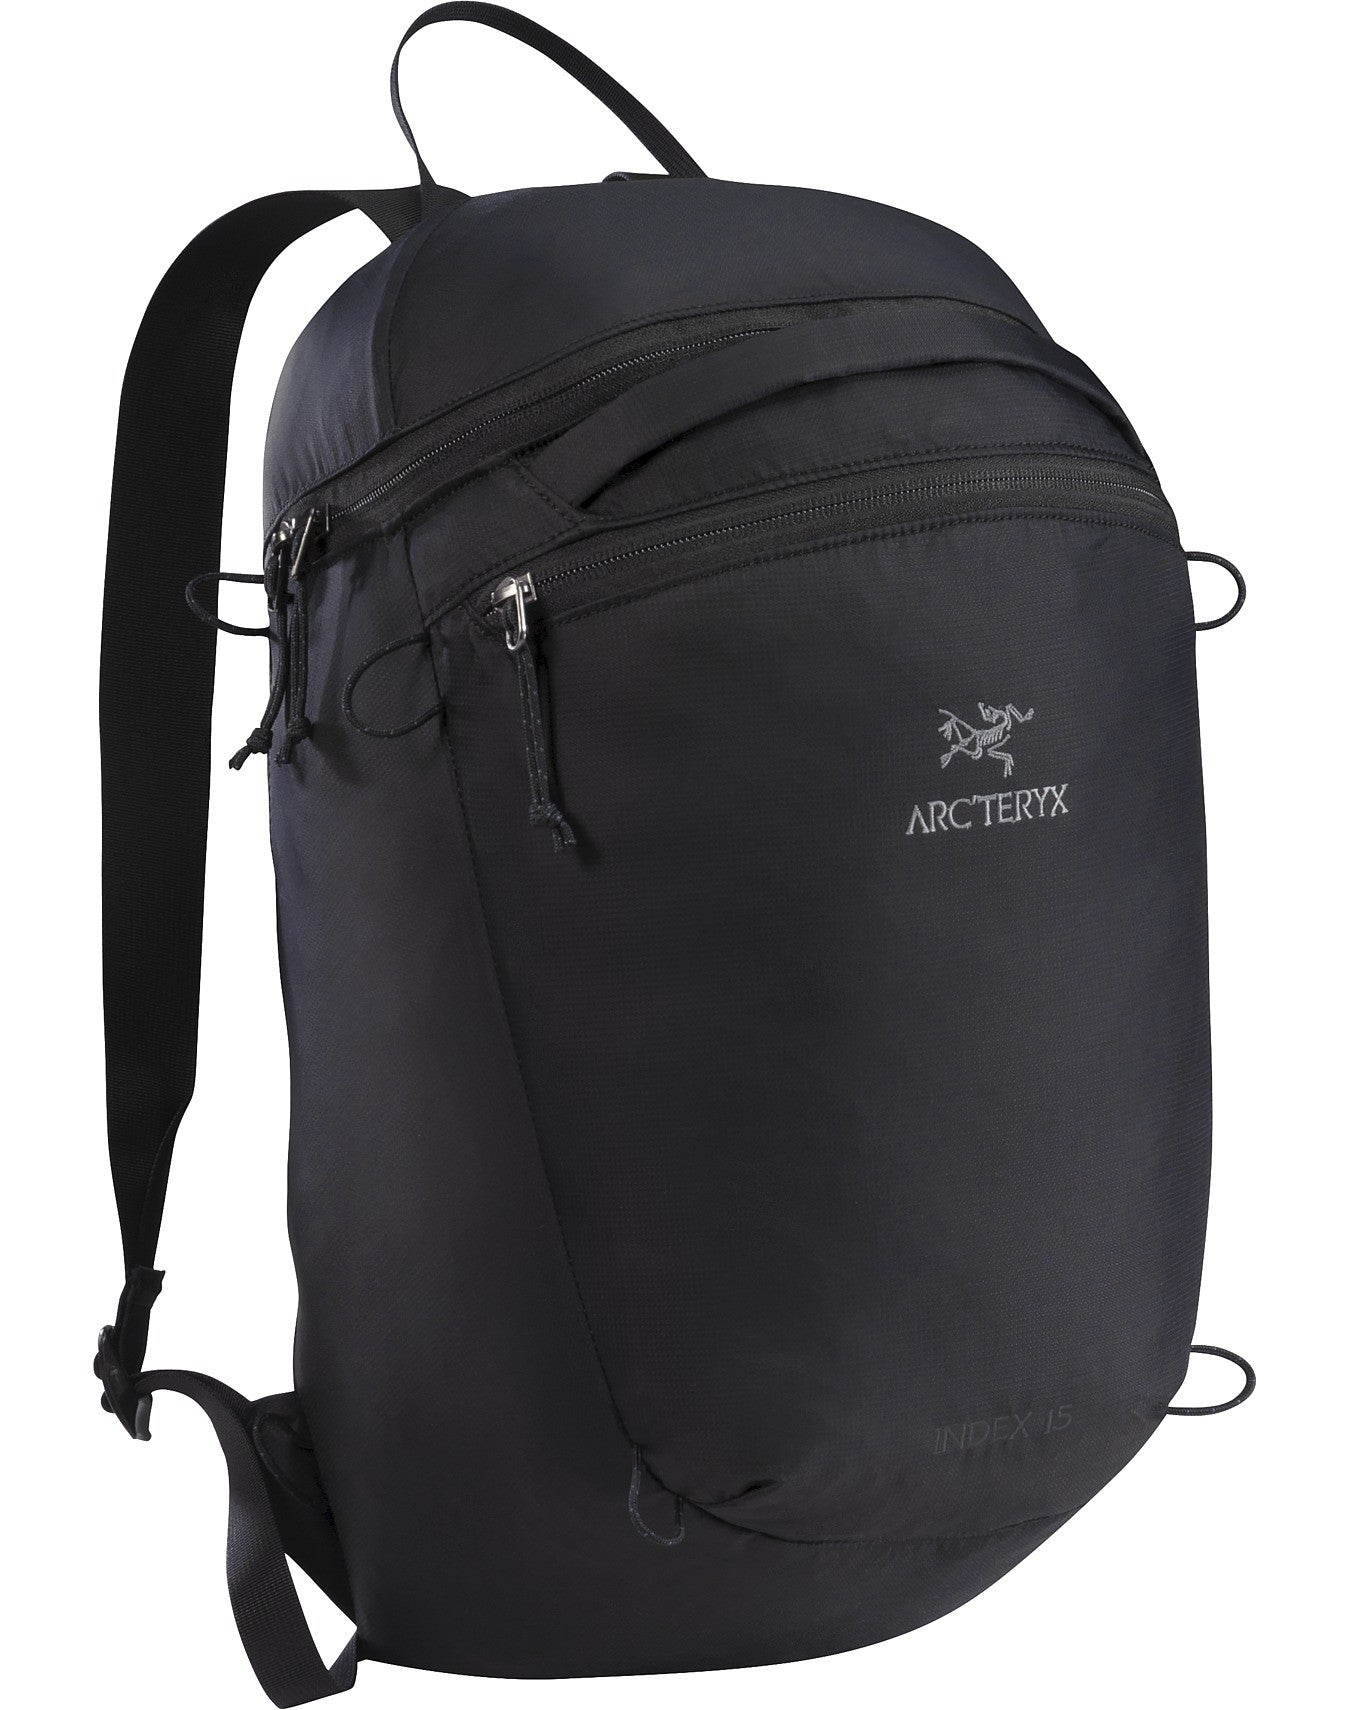 Index 15 Backpack Black - COSMOTOG